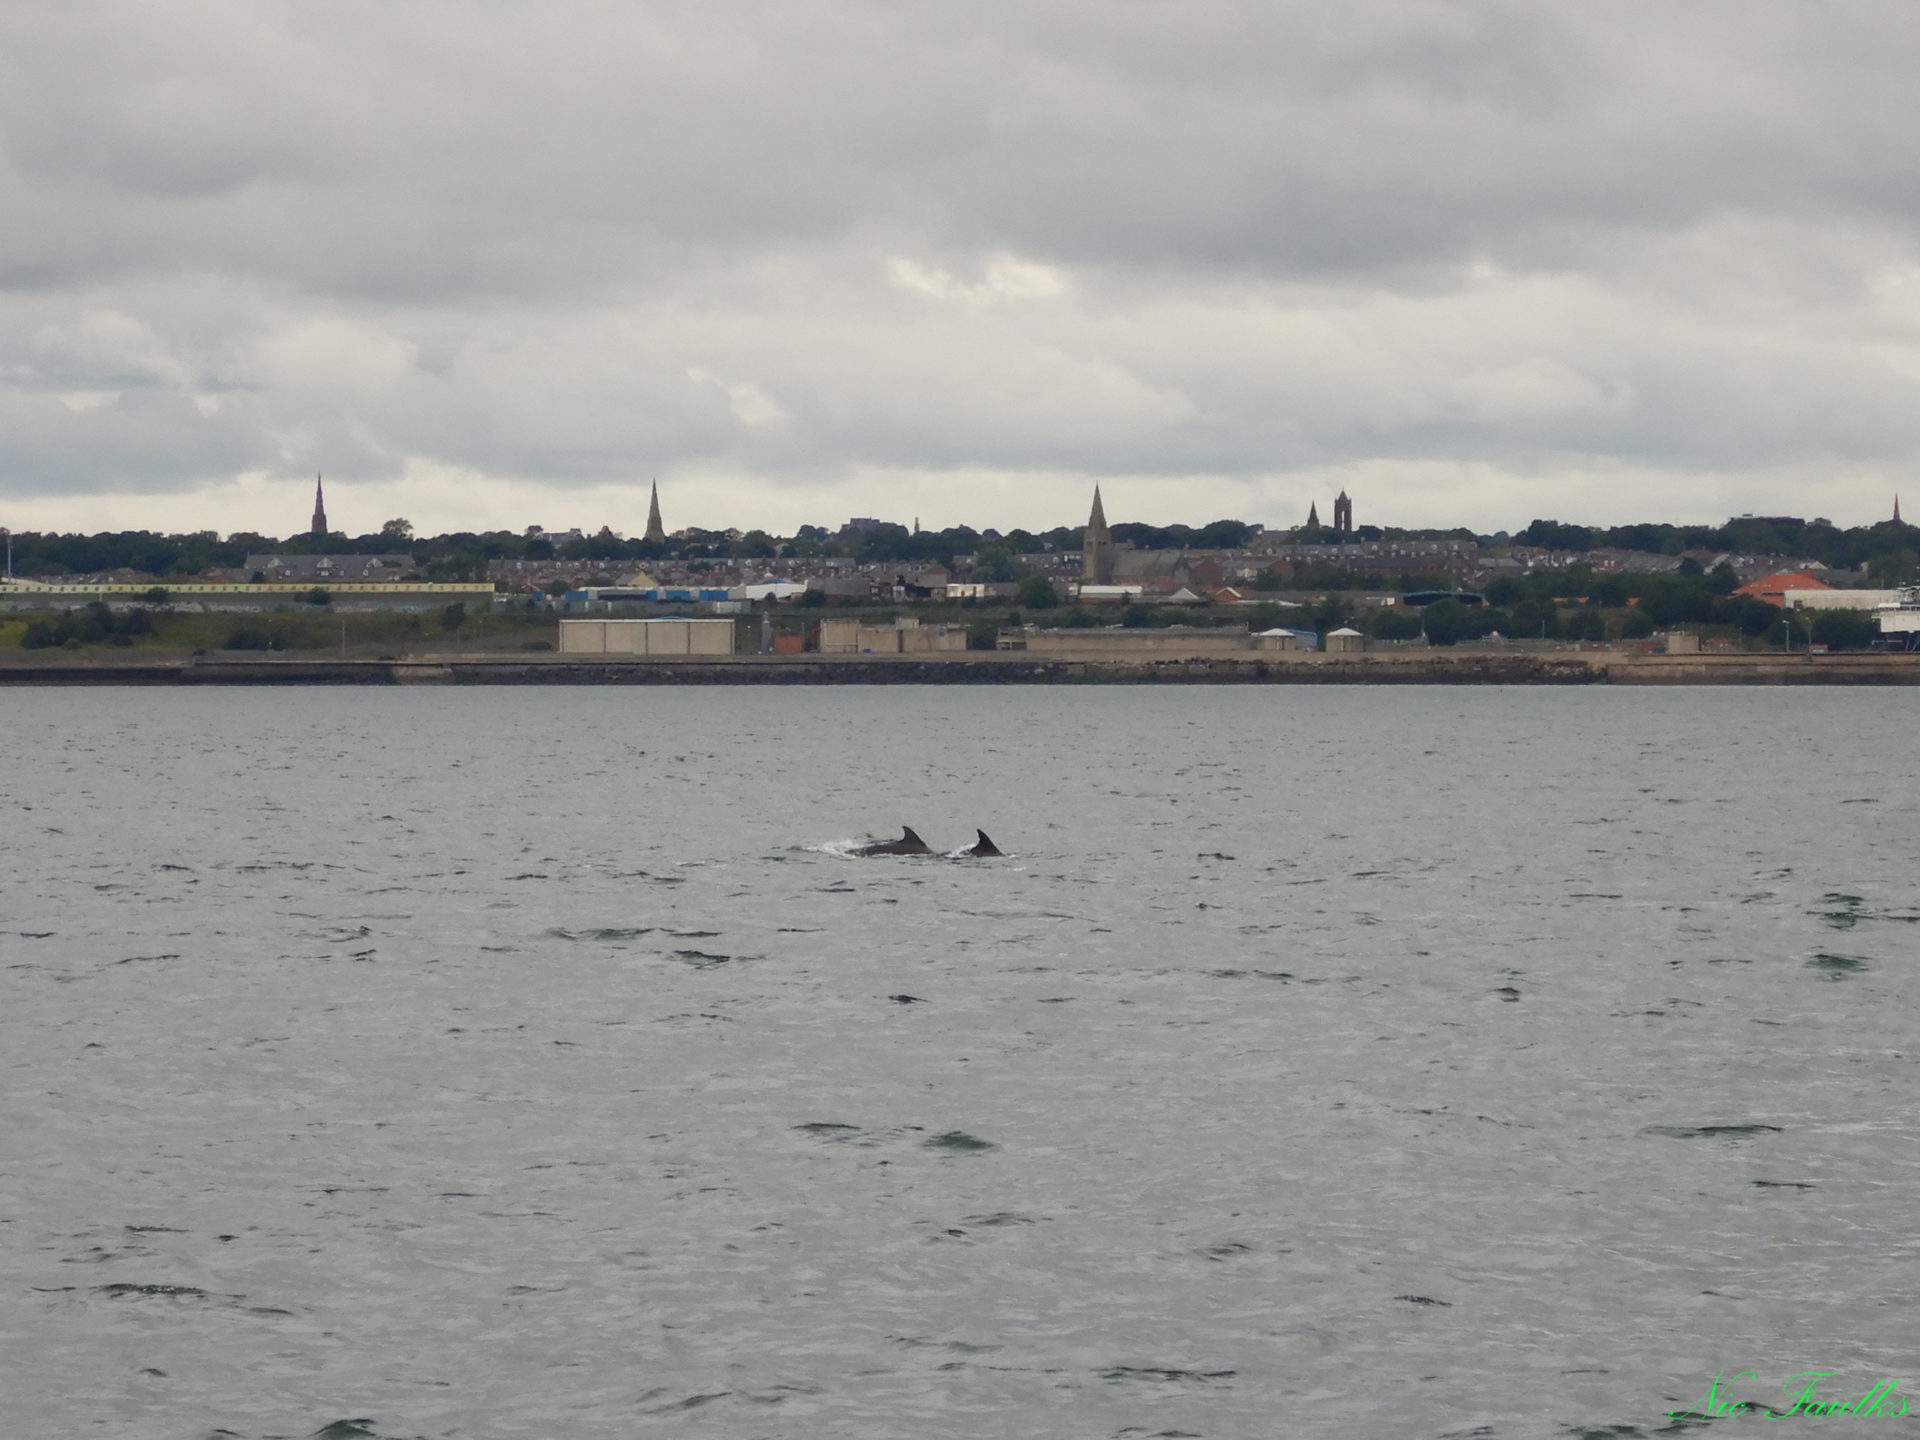 Dolphins close to Hendon Rocks